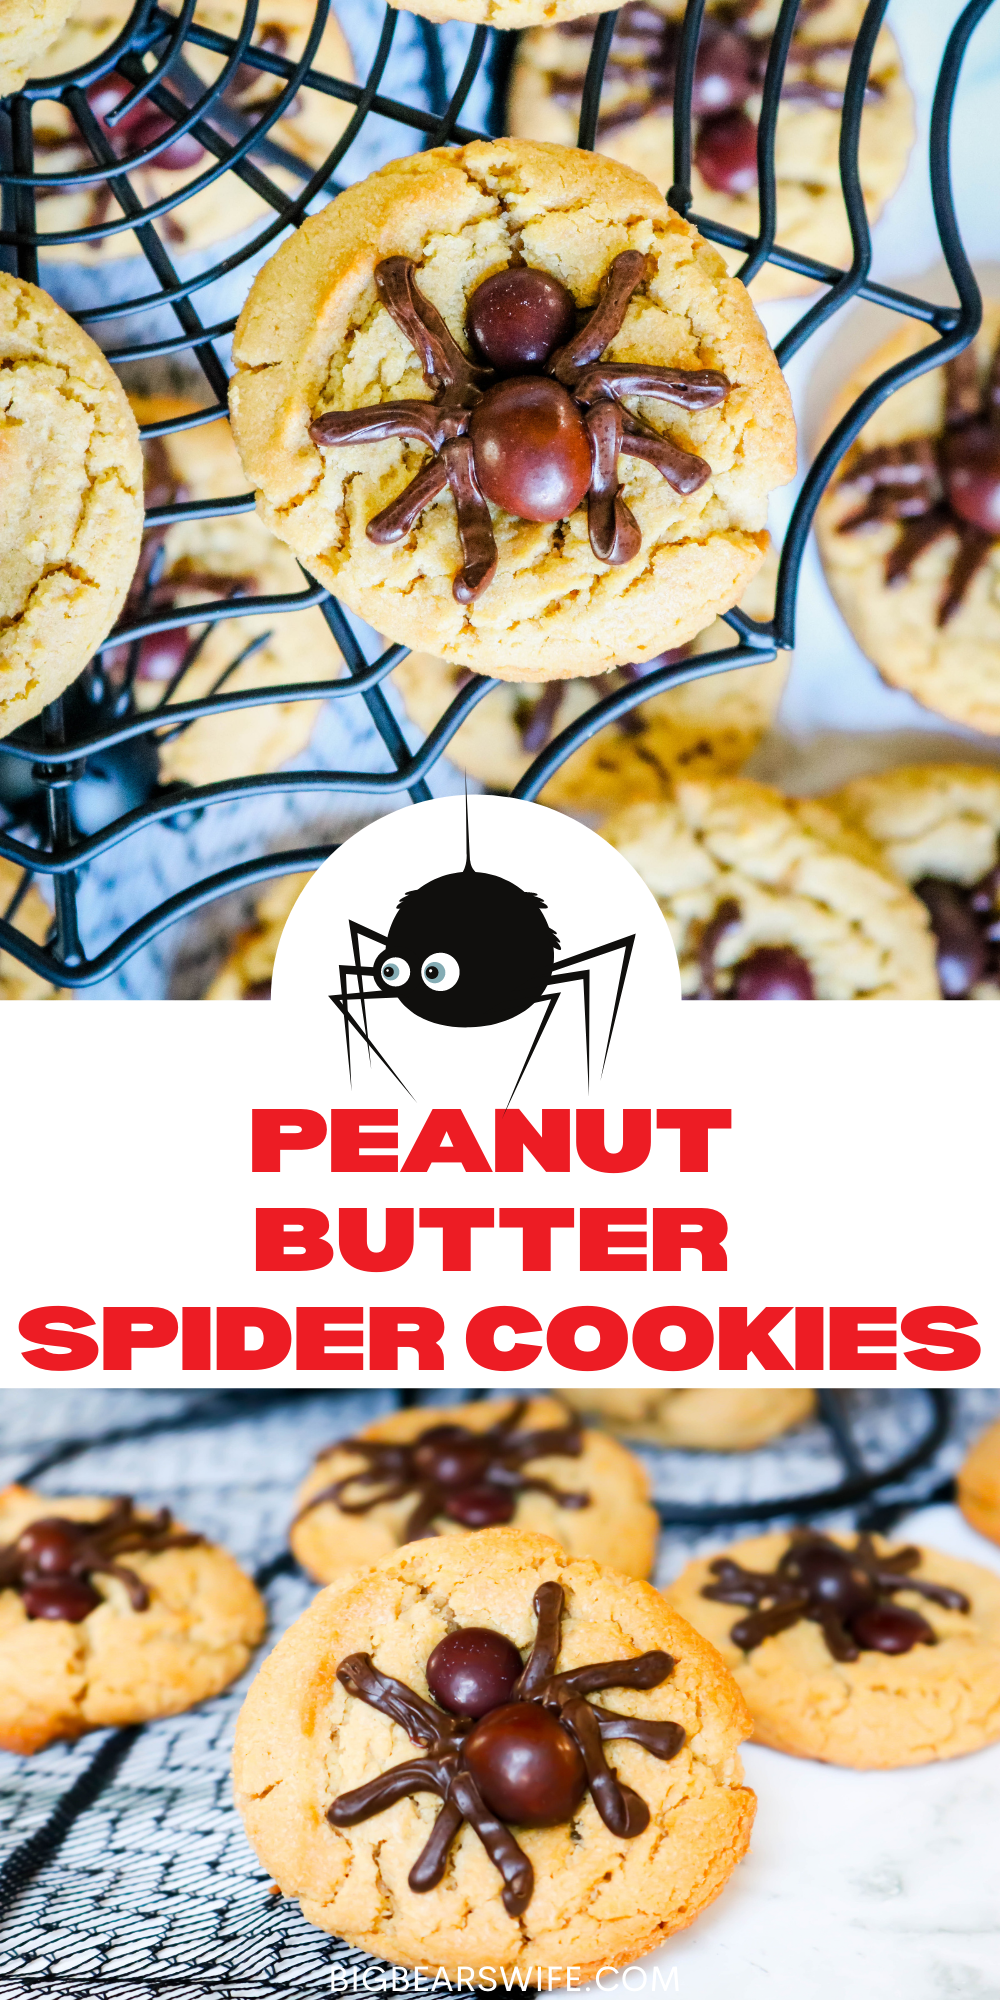 This Peanut Butter Spider Cookies recipe is an easy Halloween cookie recipe! These easy spider cookies are based on my favorite Peanut Butter Blossoms and the spiders are made with brown M&Ms and melted chocolate chips! If you need a cookie recipe for a Halloween Party Dessert or something fun to make with the kids for Halloween, these peanut butter spider cookies are perfect for both.  via @bigbearswife